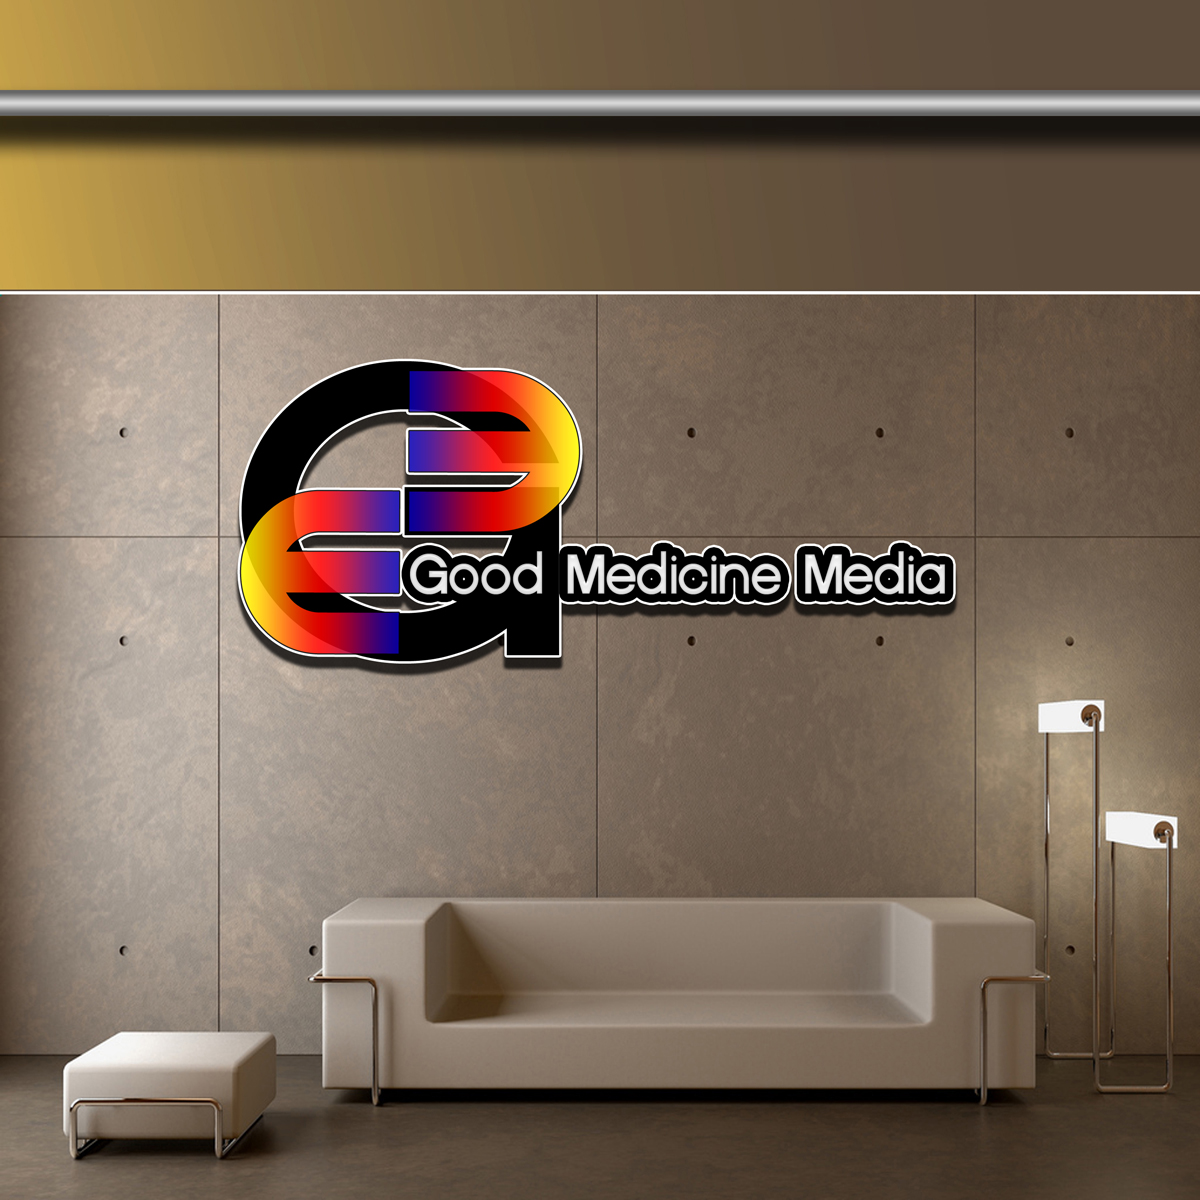 Logo Design by MITUCA ANDREI - Entry No. 11 in the Logo Design Contest Good Medicine Media Logo Design.